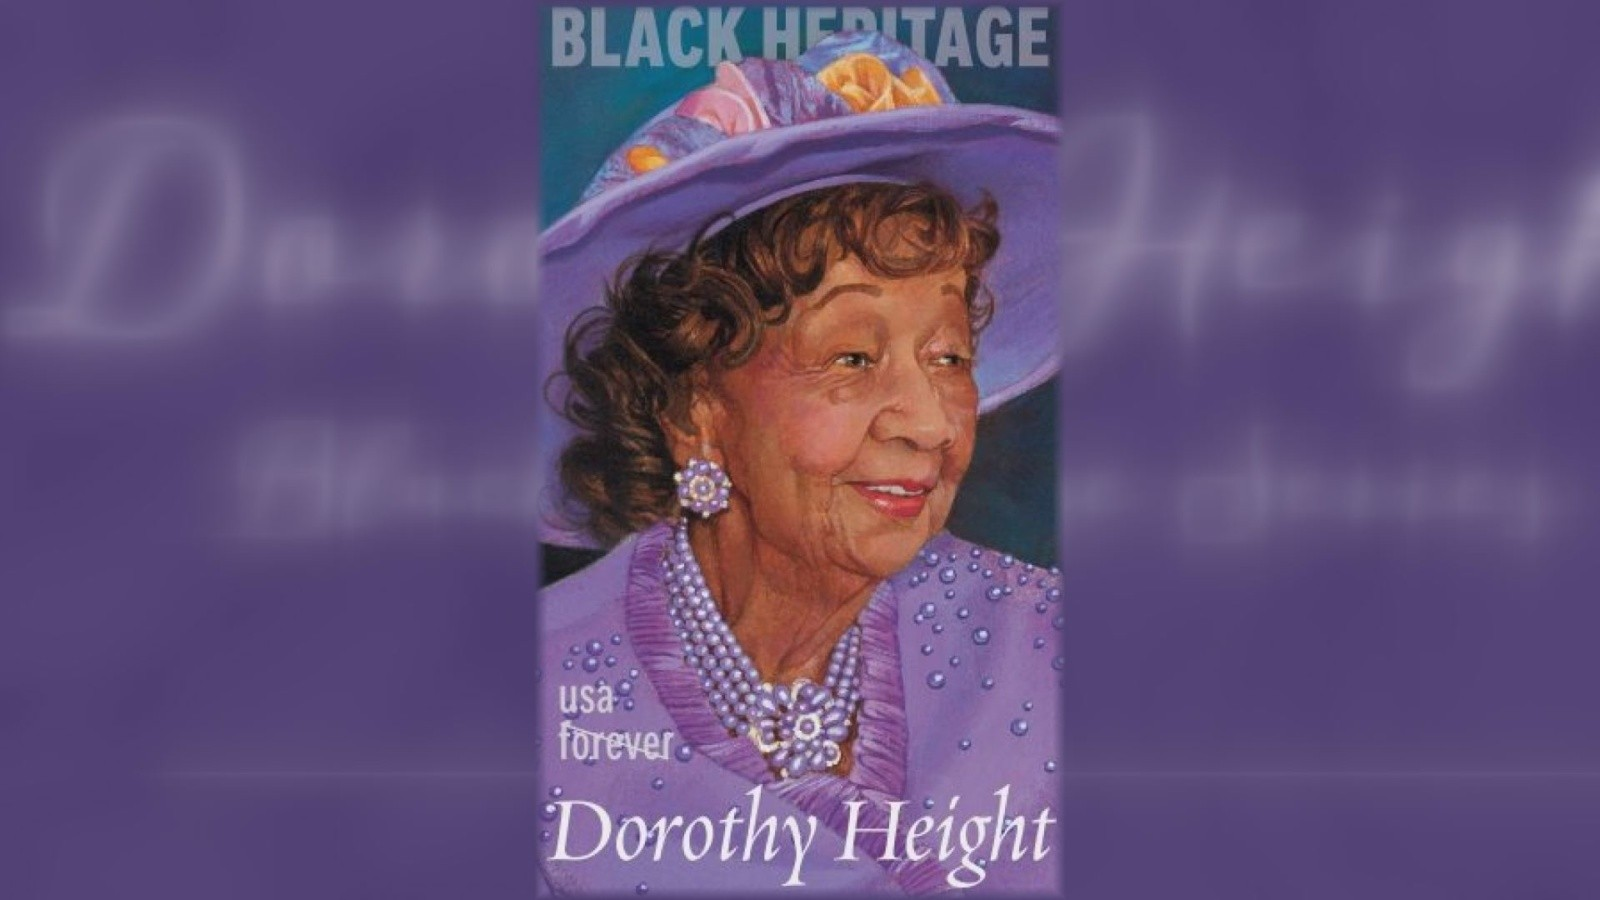 USPS to honor civil rights leader Dorothy Height